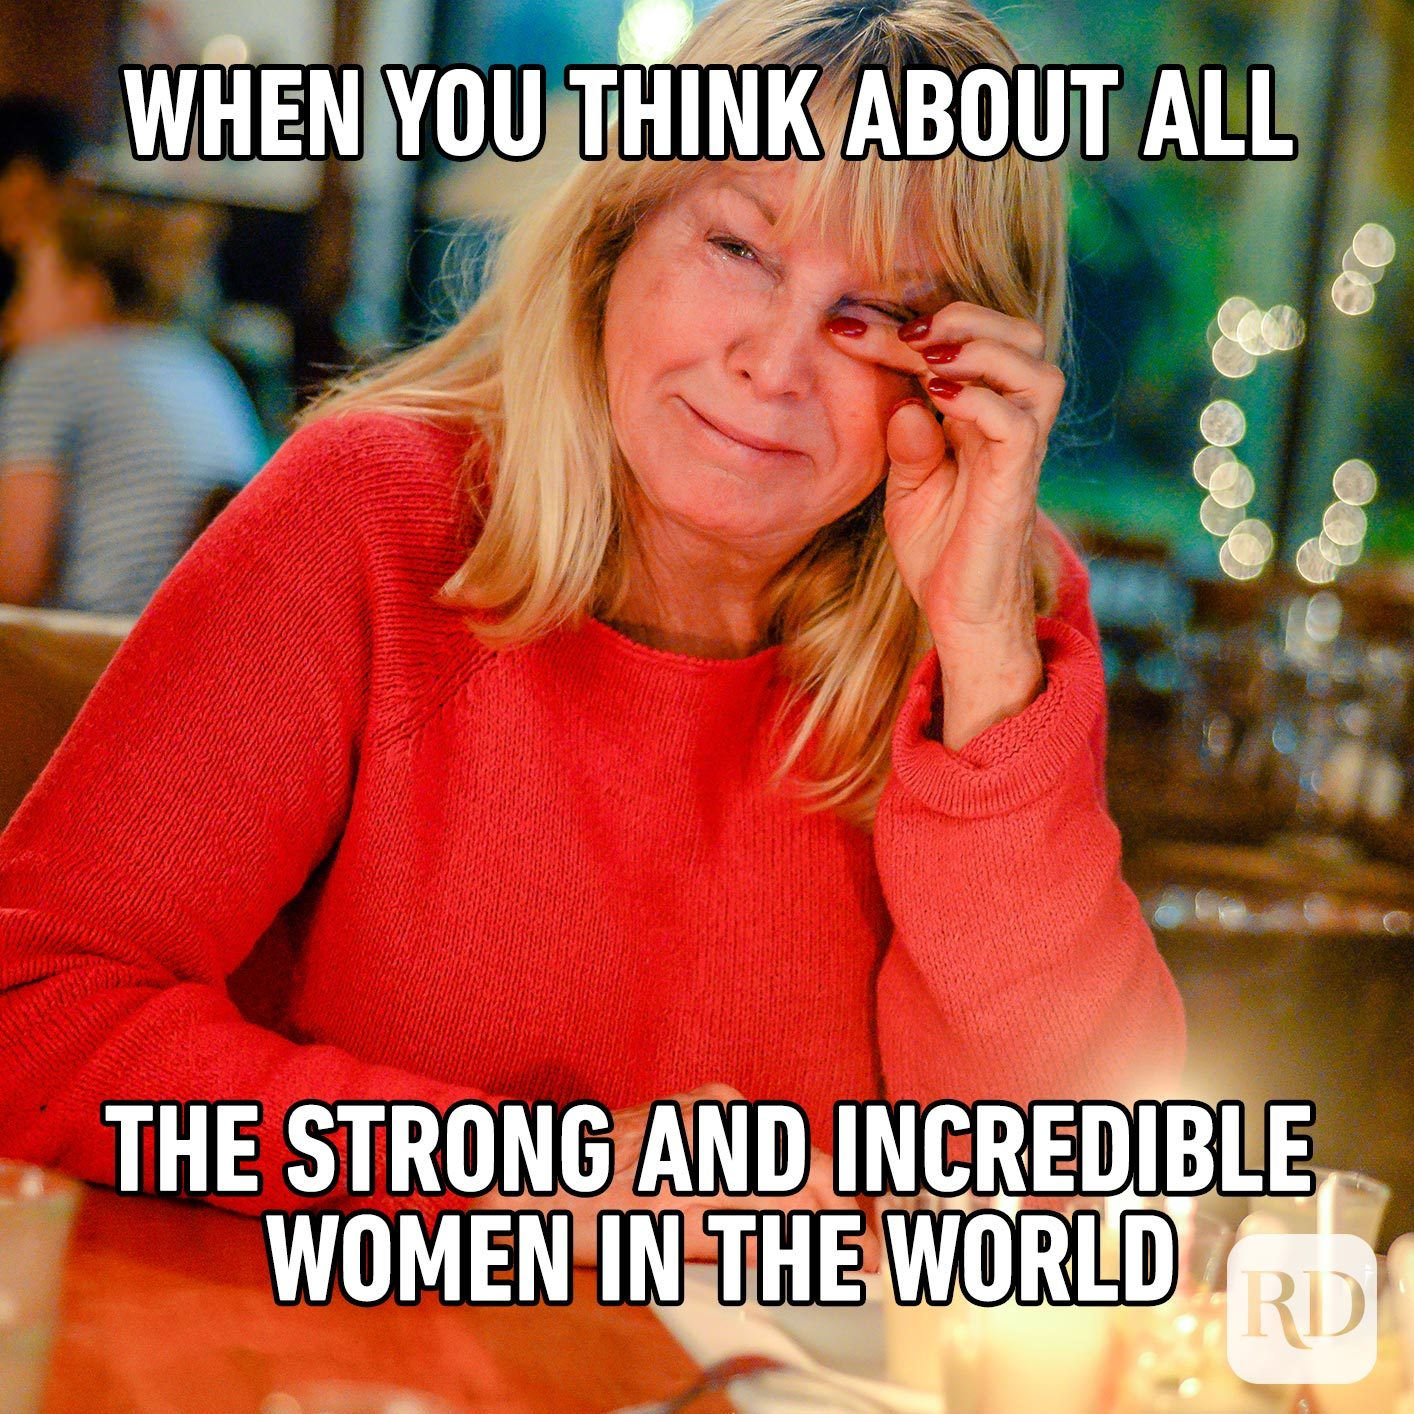 Woman crying. Meme text: When you think about all the strong and incredible women in the world